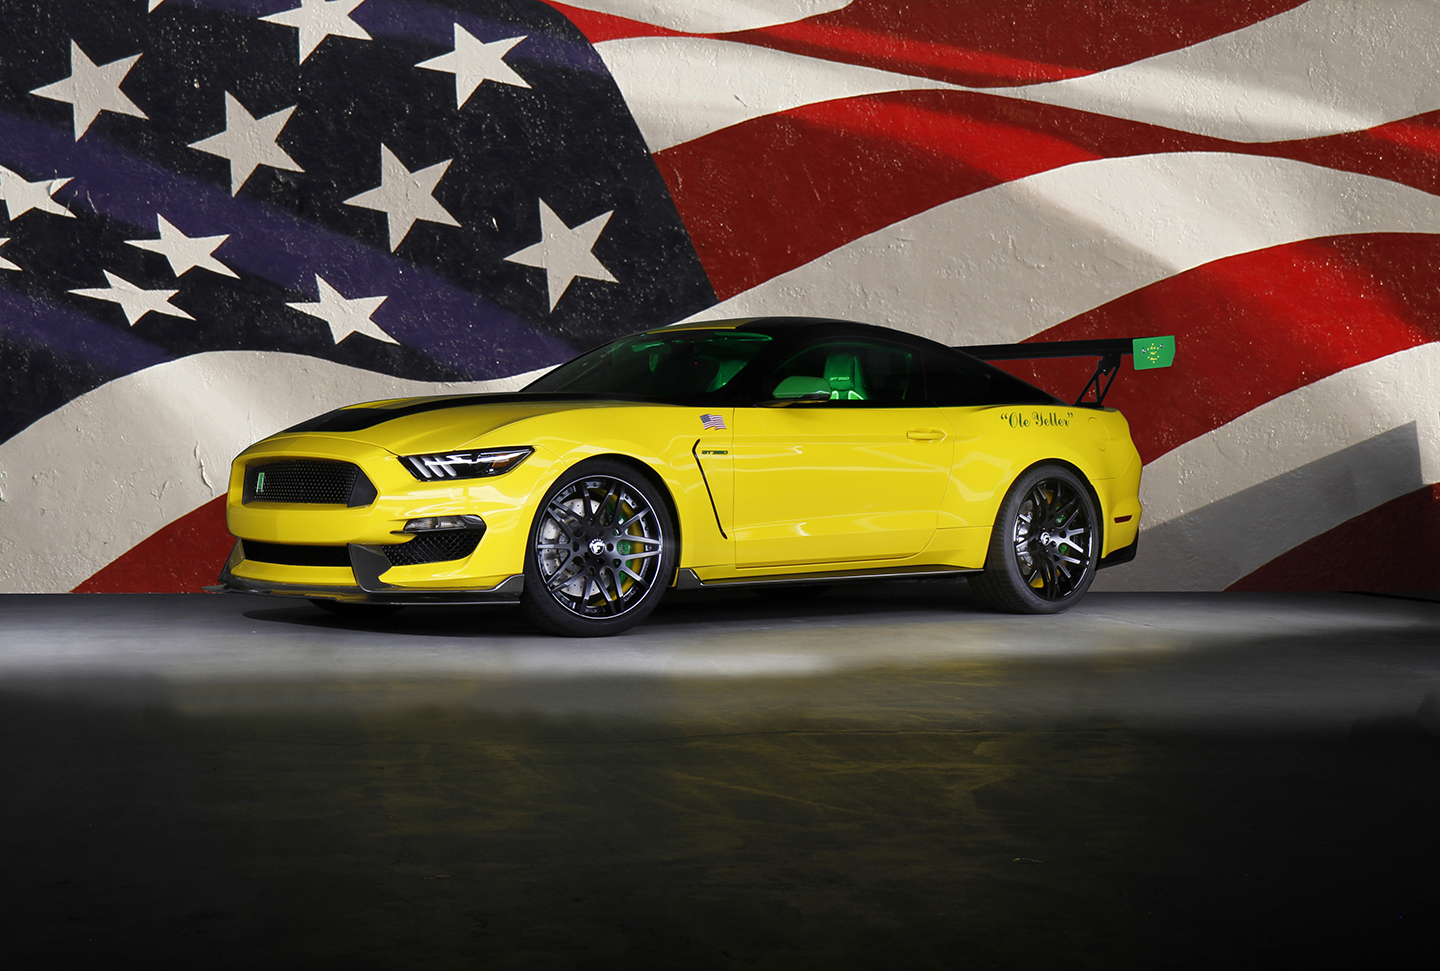 Ole Yeller GT350 Mustang Raises $295,000 for Charity